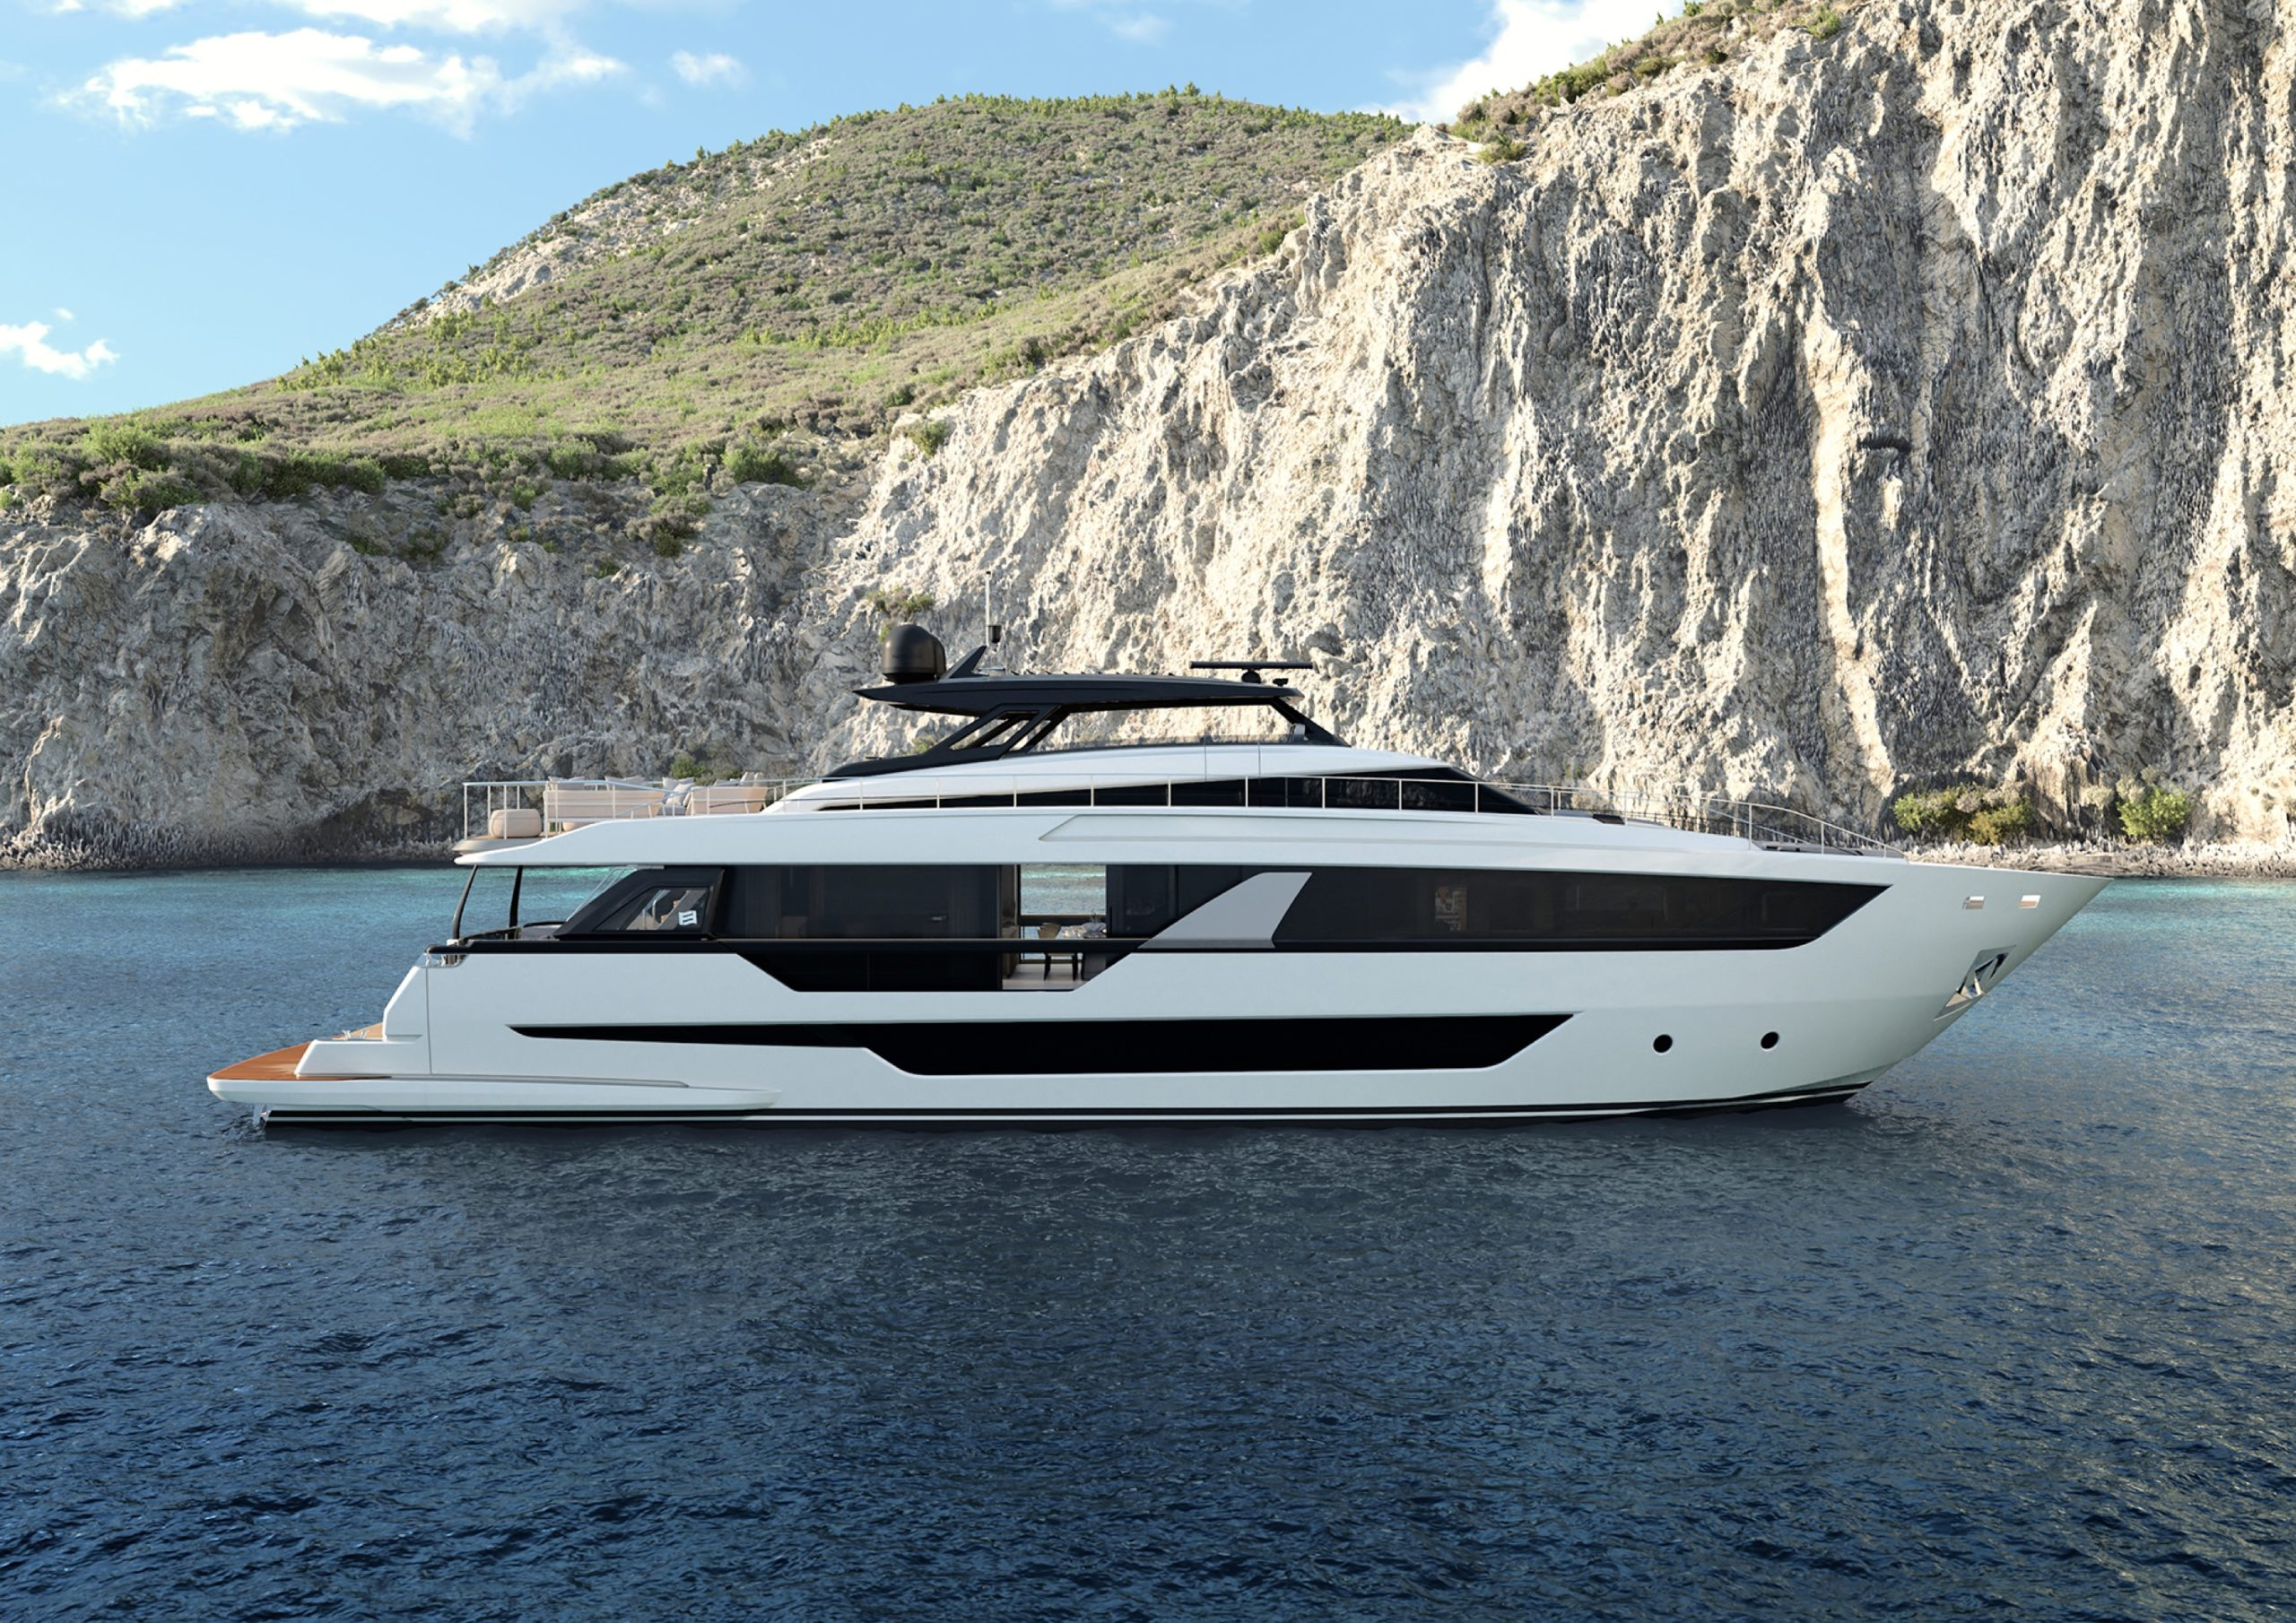 FY1000 YACHT EPIC